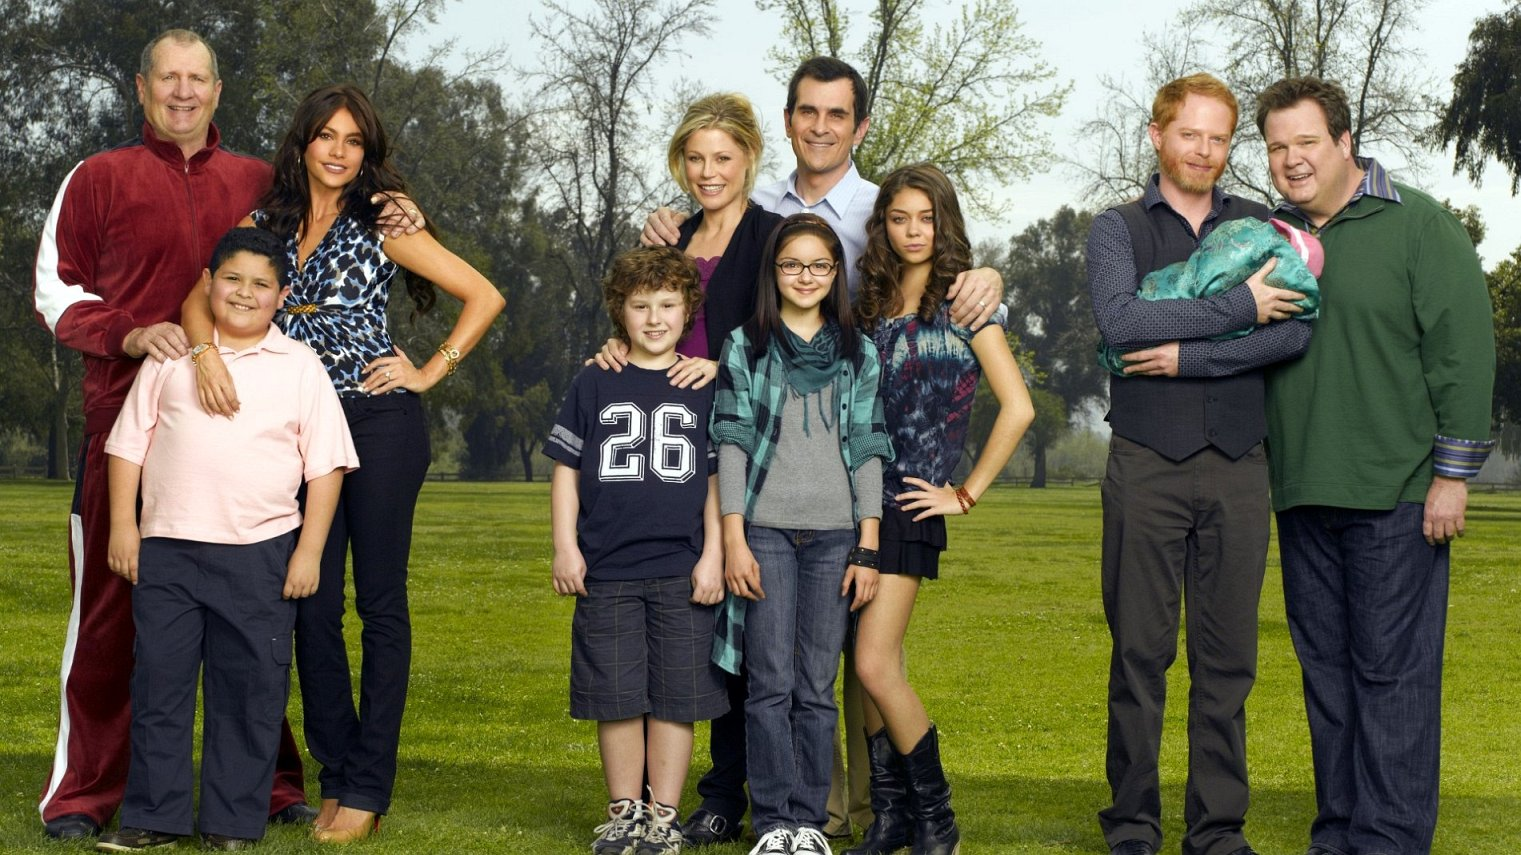 Modern Family S9 episode 16 watch online